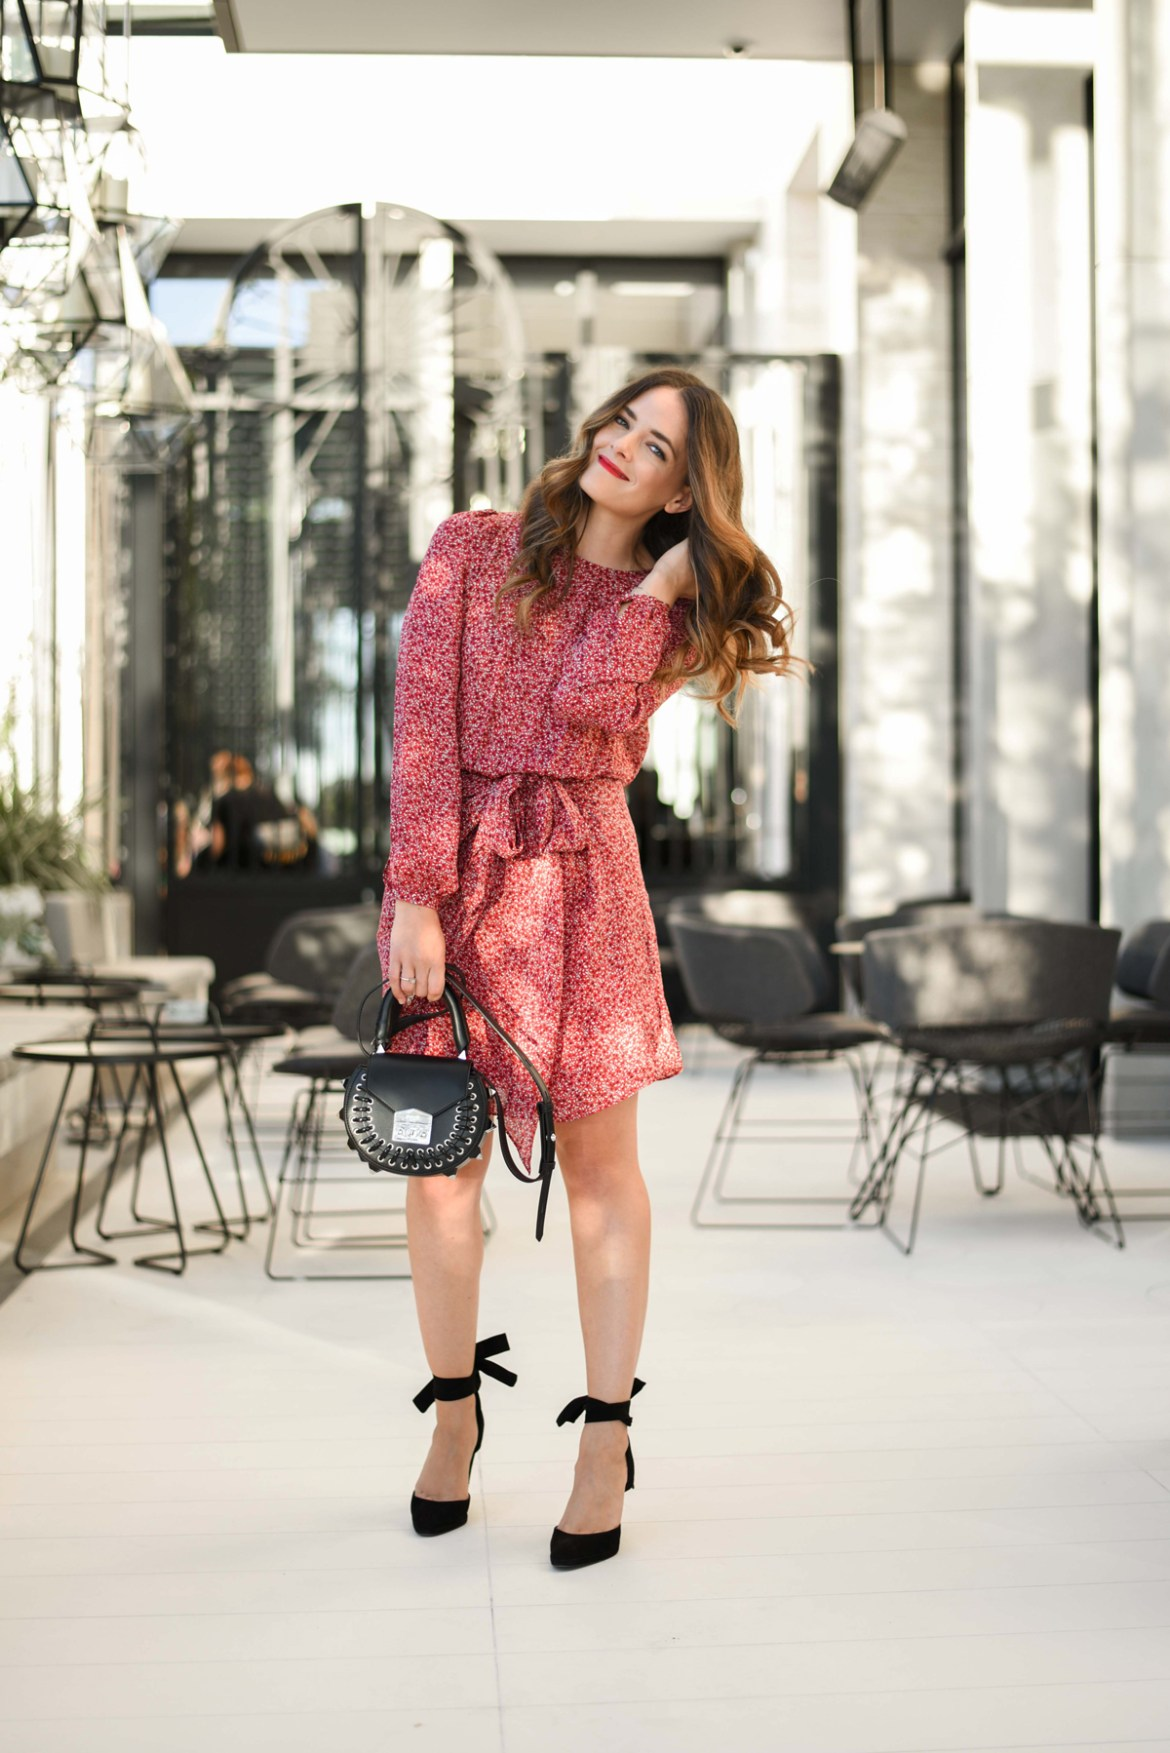 Saba Daphne silk red dress worn by Australian fashion blogger Inspiring Wit with Salar black bag, red lipstick and soft wavy hair at TWR in Crown Perth